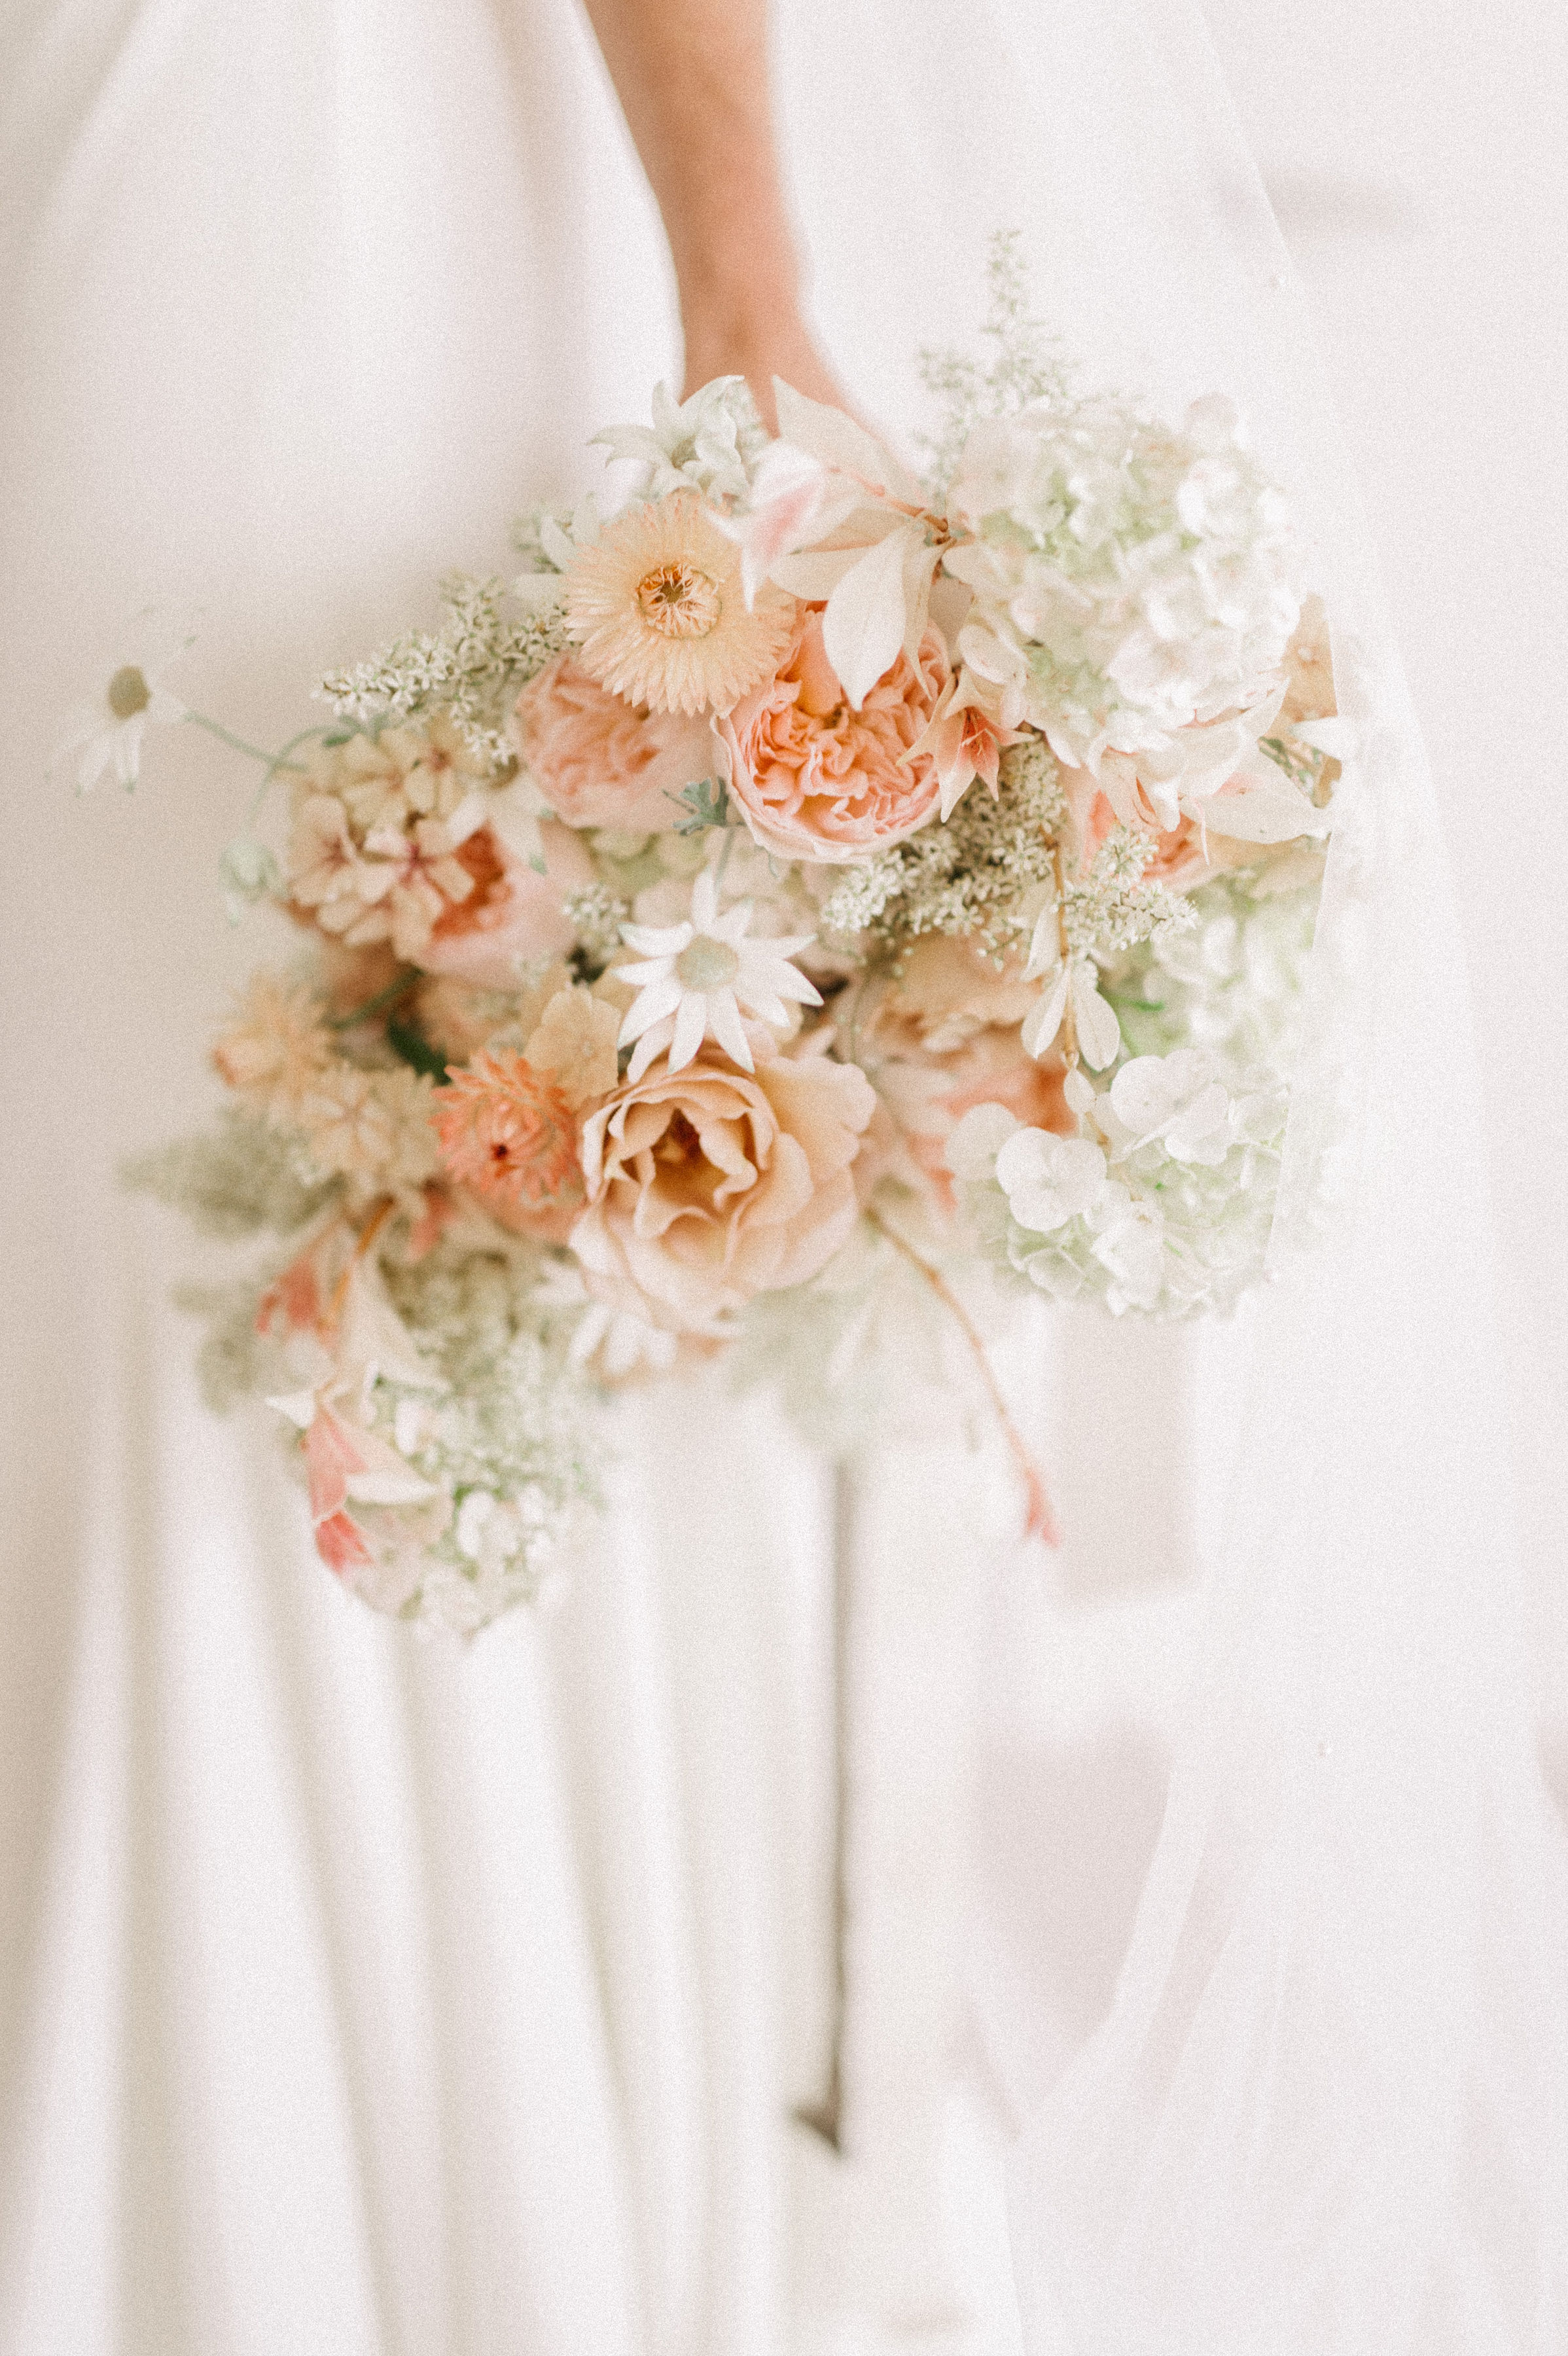 late summer textural bridal bouquet.  Soft and romantic wedding flowers